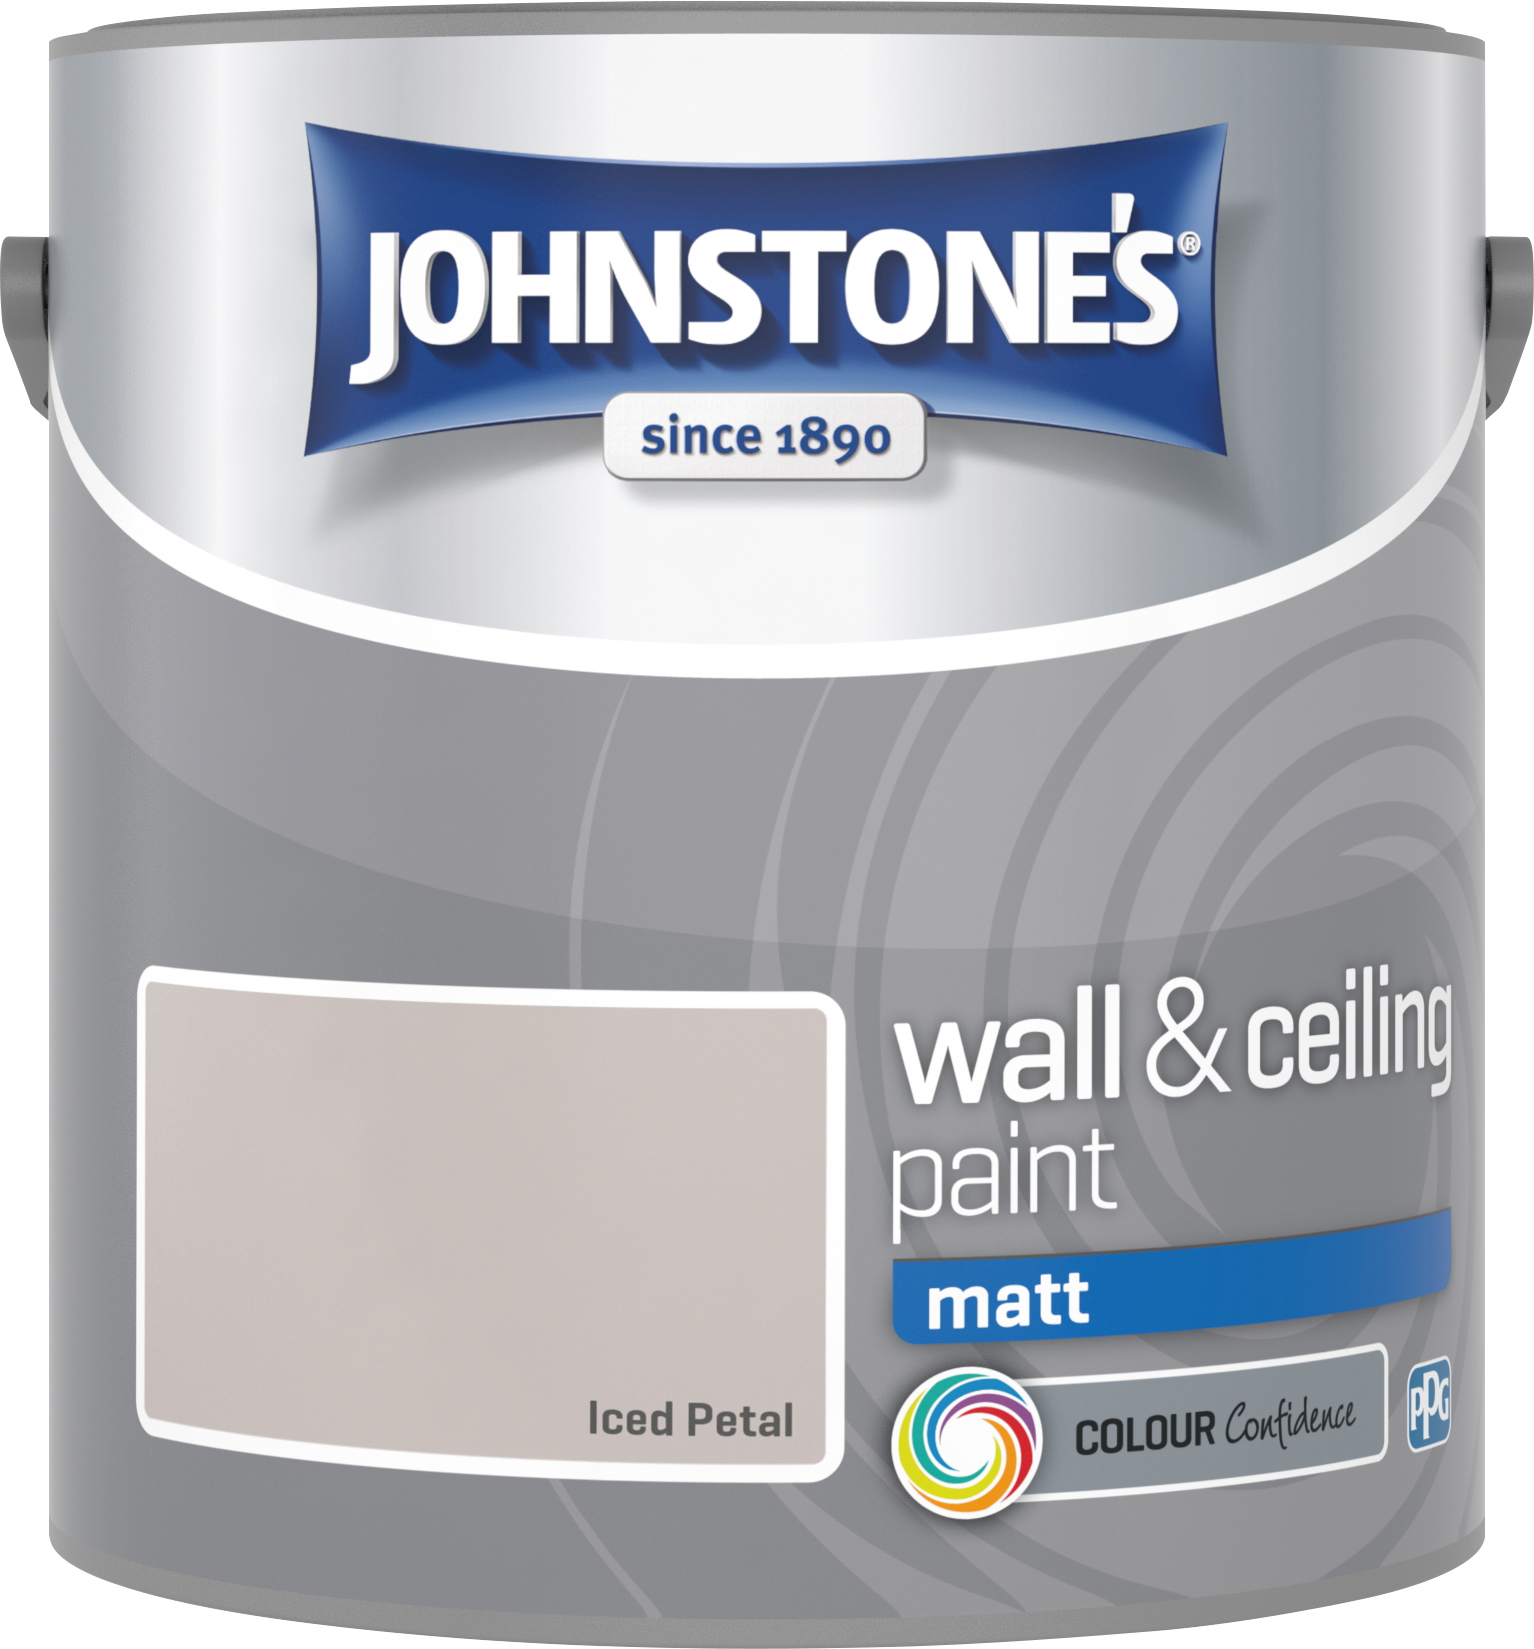 Johnstone's 304039 2.5 Litre Matt Emulsion Paint - Iced Petal